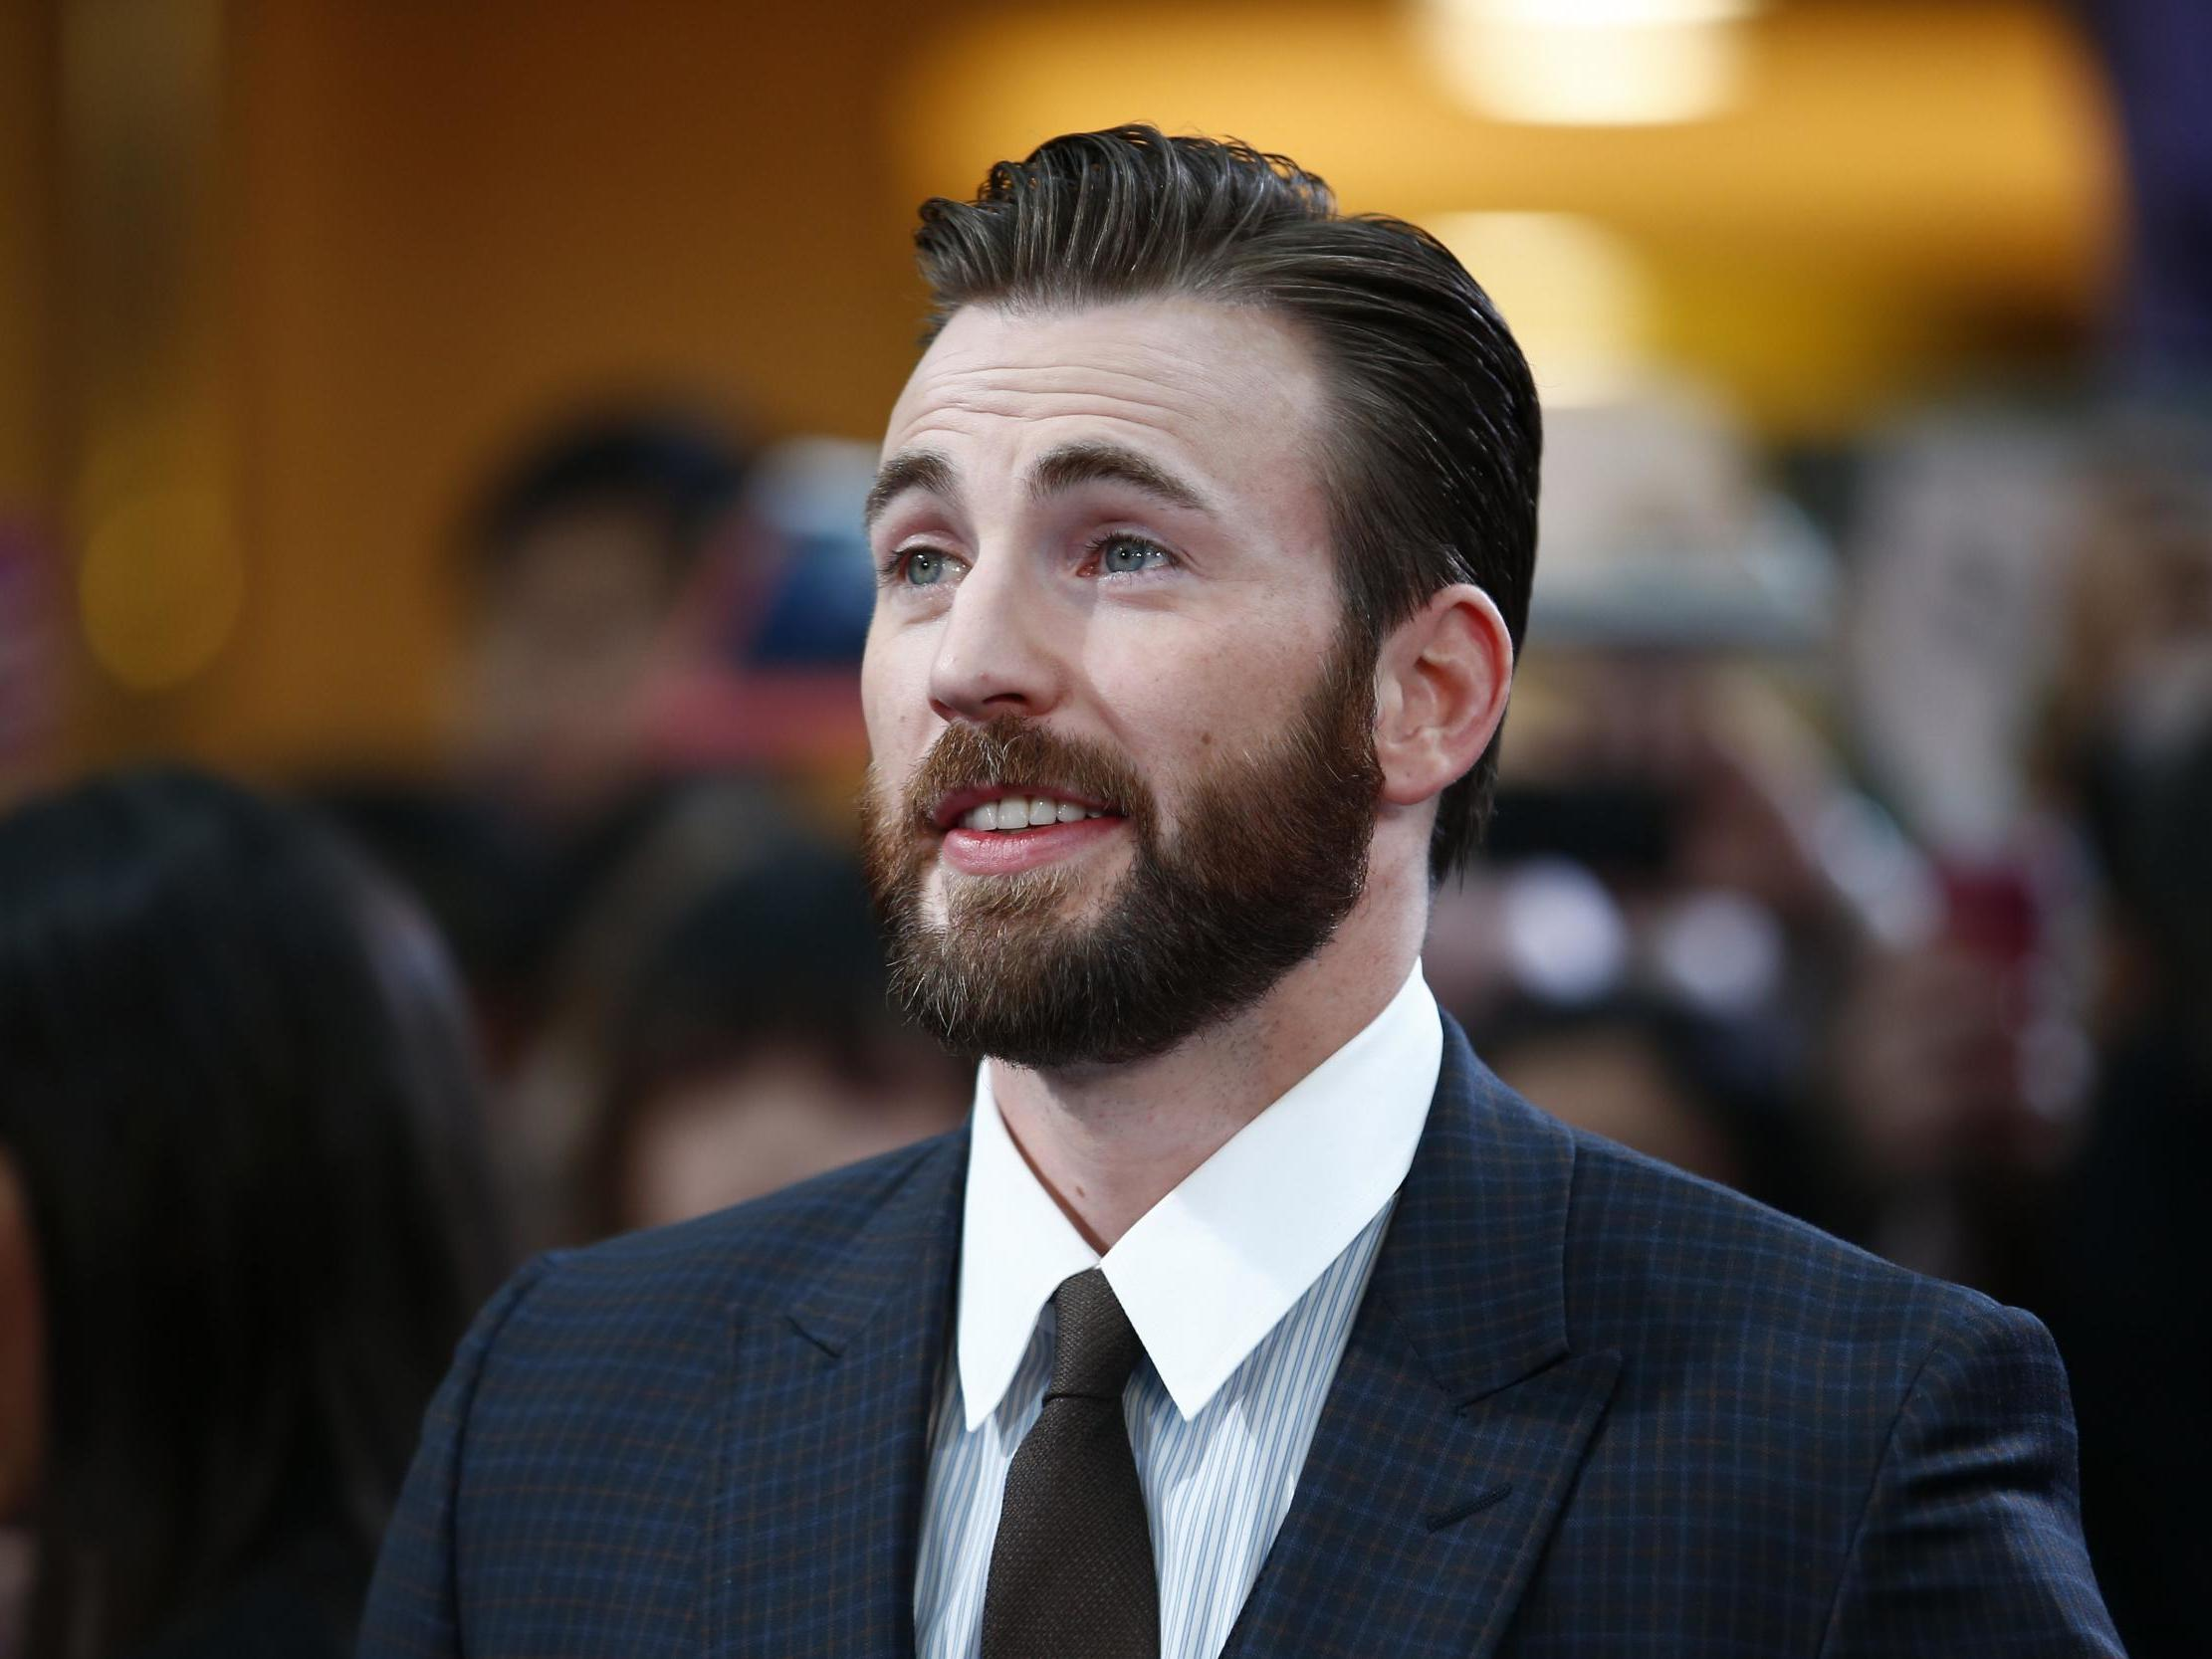 Marvel star Chris Evans stirs up Twitter storm with ranking of favourite crisps 1